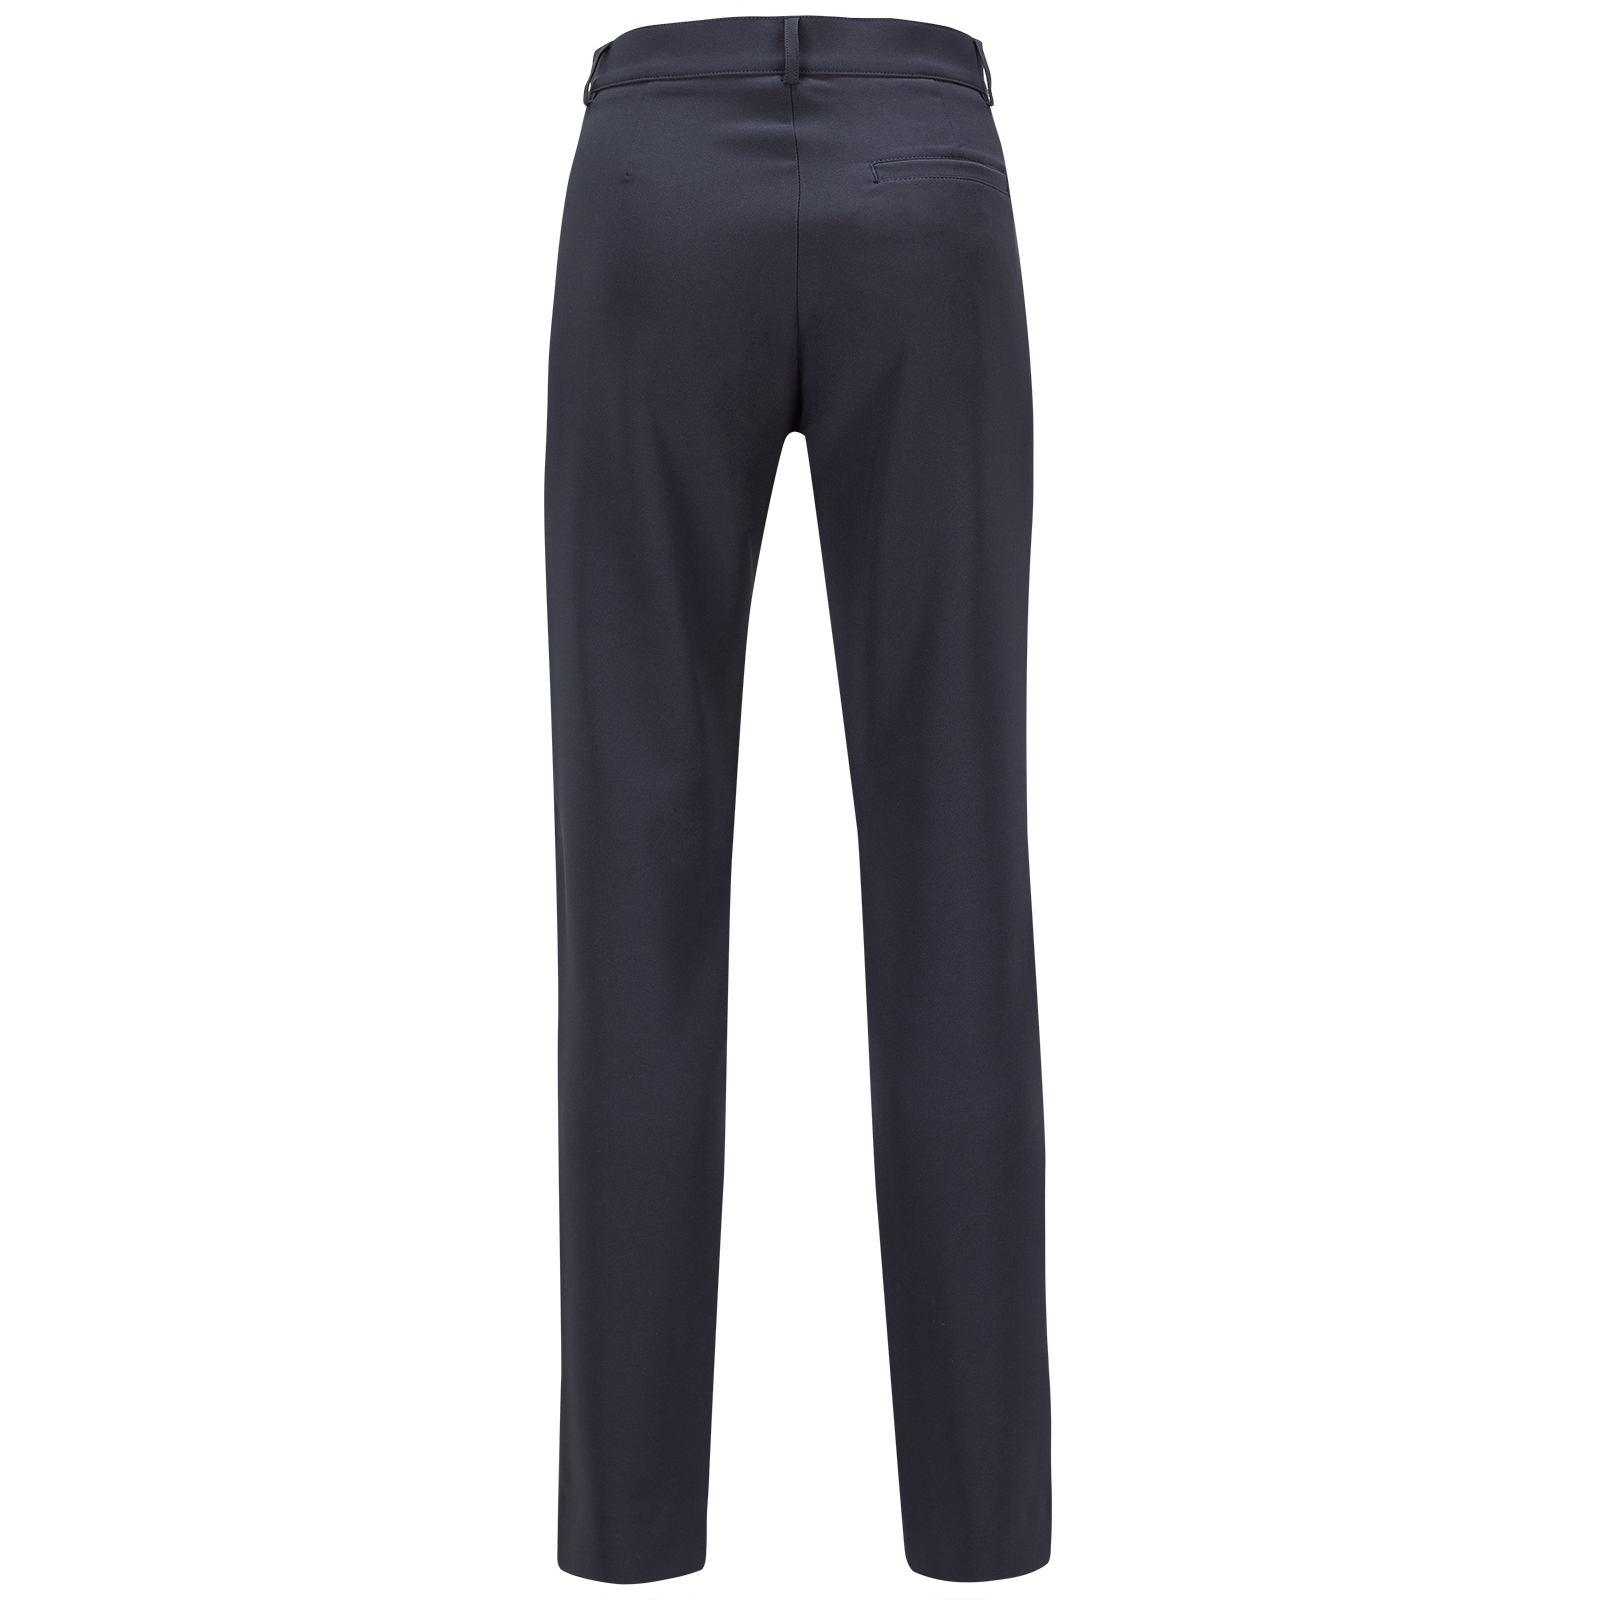 Stylish 7/8 length slim fit ladies' golf trousers from luxurious 4-way-stretch